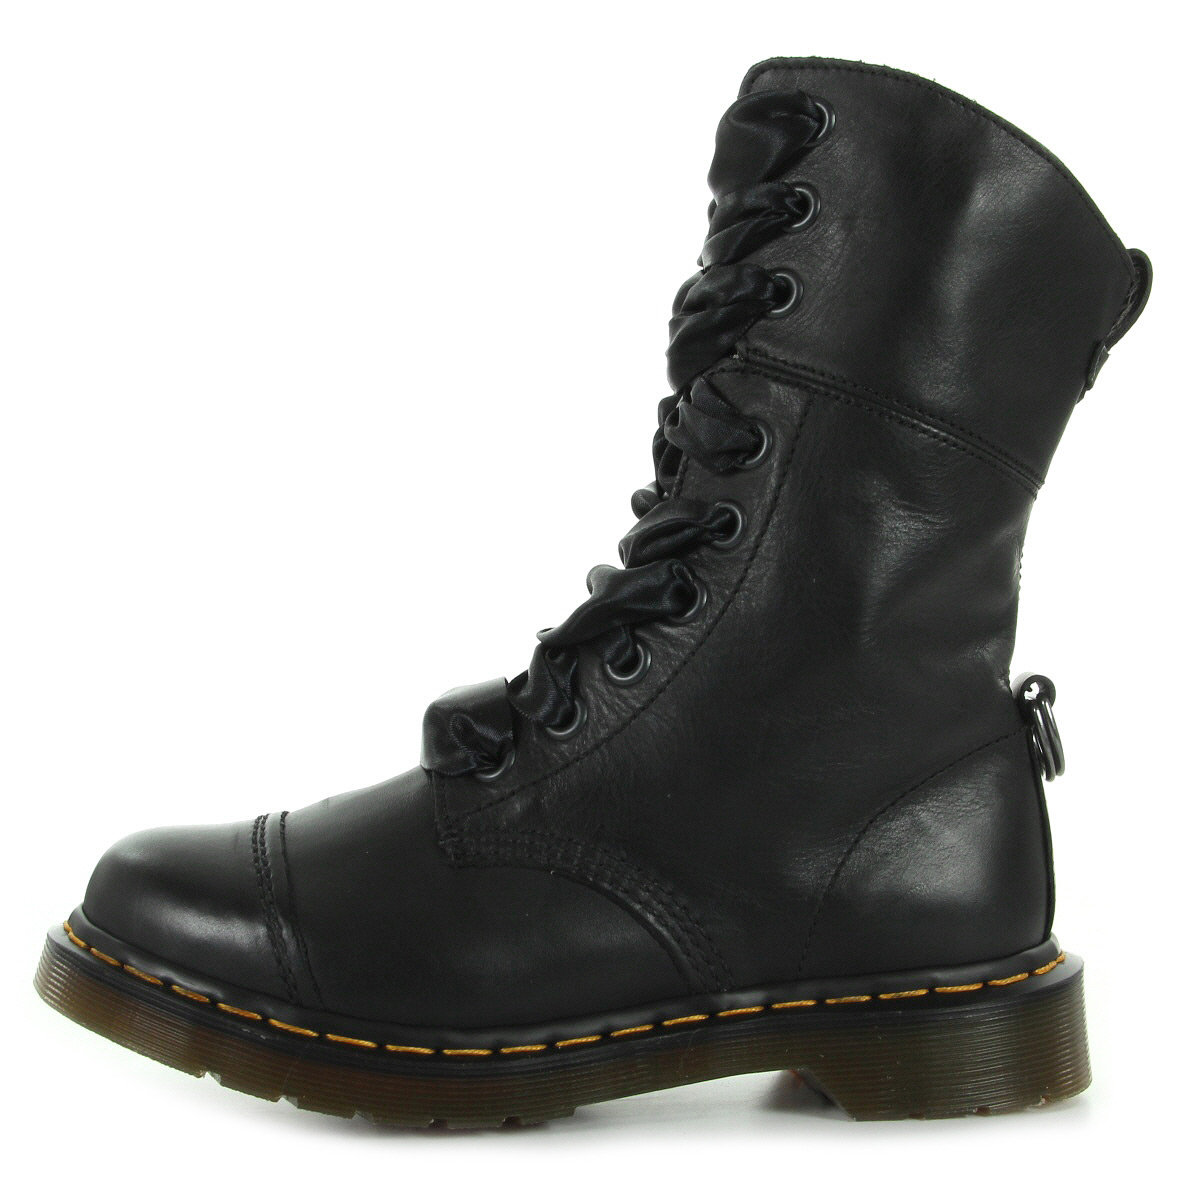 bottines doc martens femme aimilita taille noir noire cuir lacets ebay. Black Bedroom Furniture Sets. Home Design Ideas